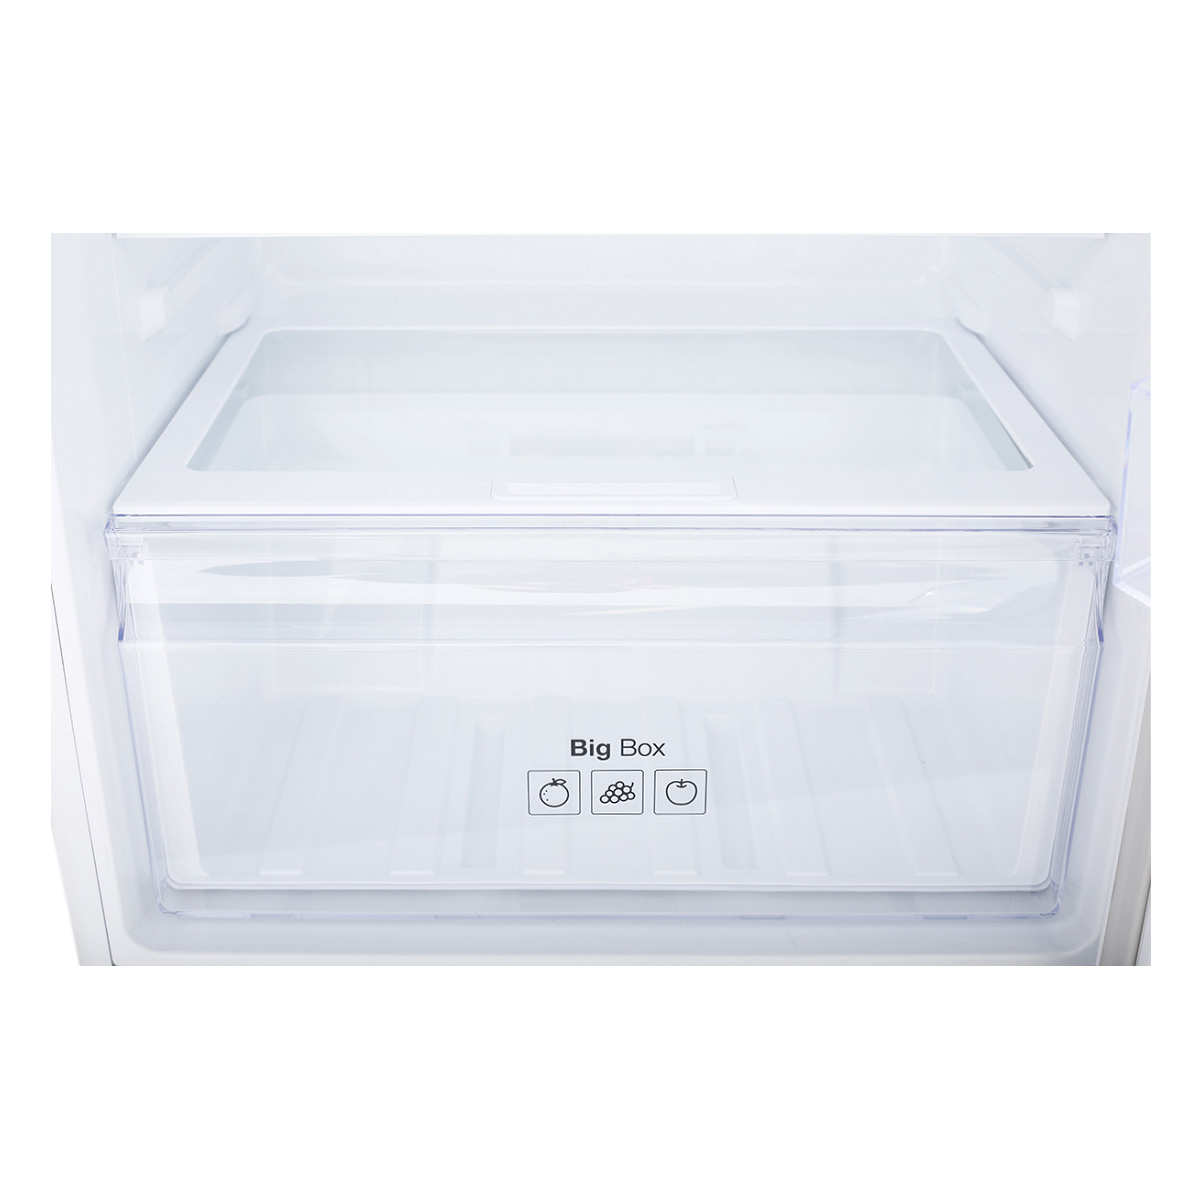 Samsung SR399WTC 400L Top Mount Fridge with Twin Cooling Plus 35354